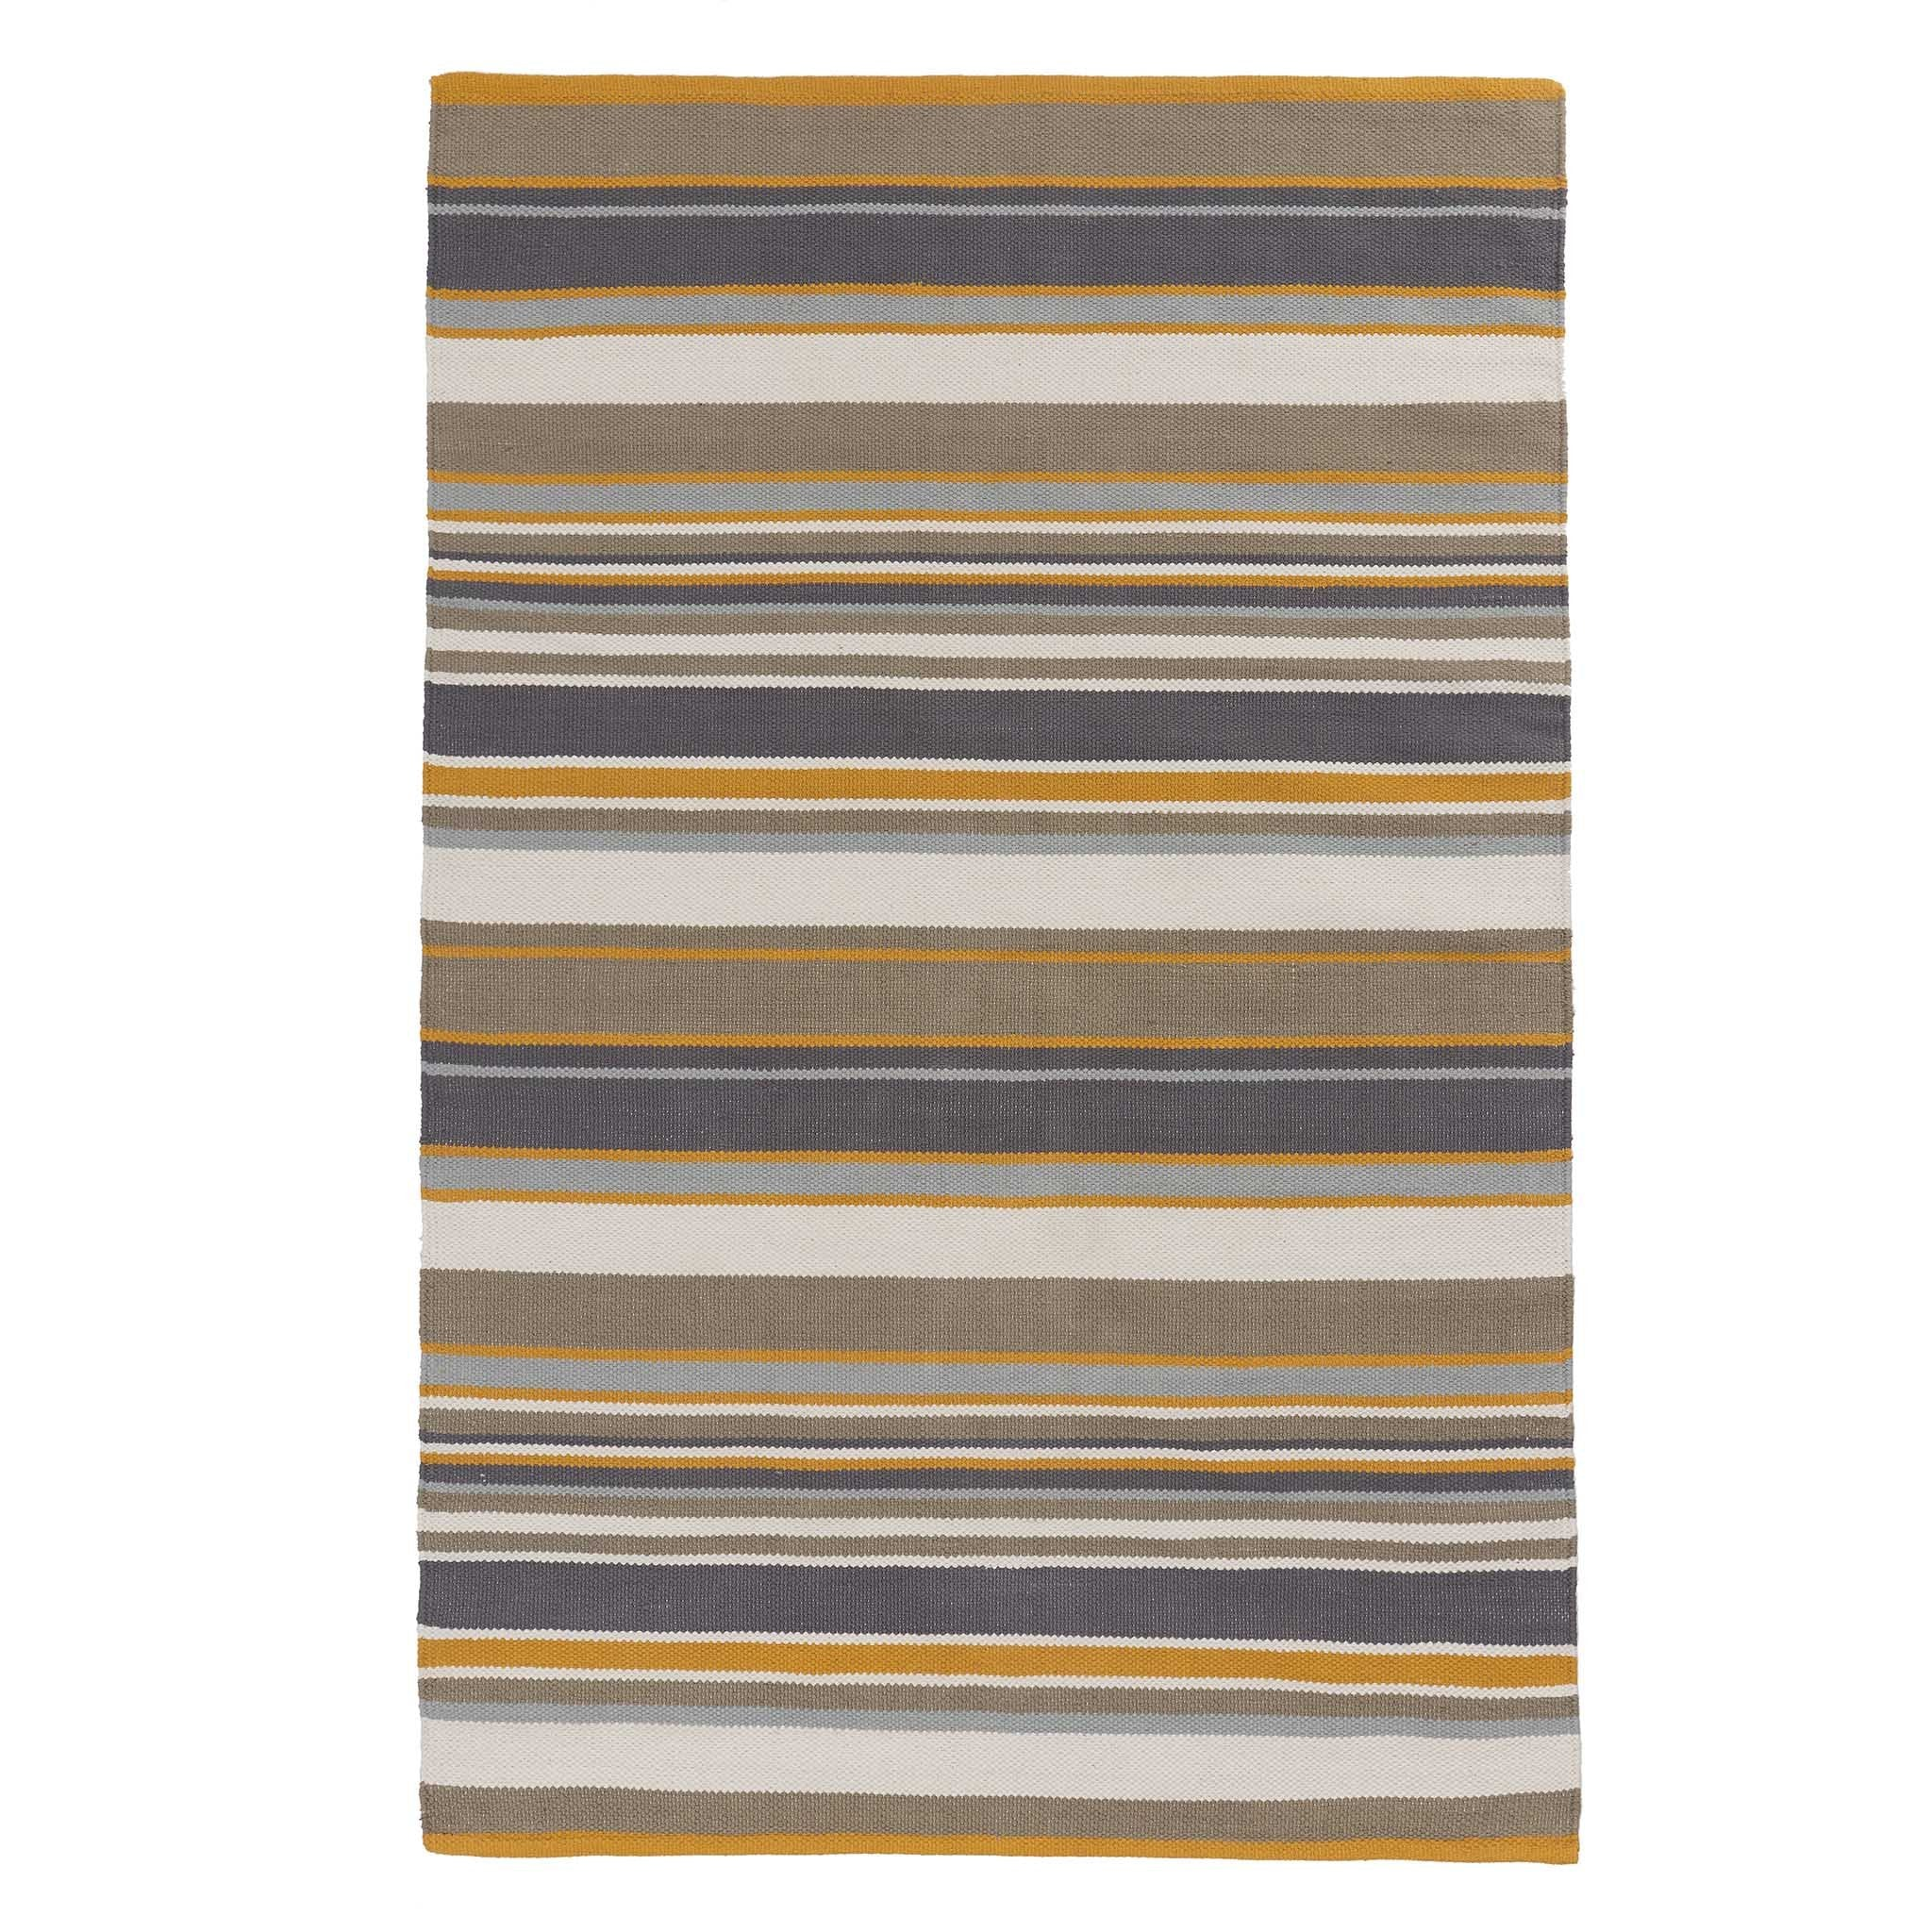 Mandana Rug in dark grey & olive green & mustard | Home & Living inspiration | URBANARA